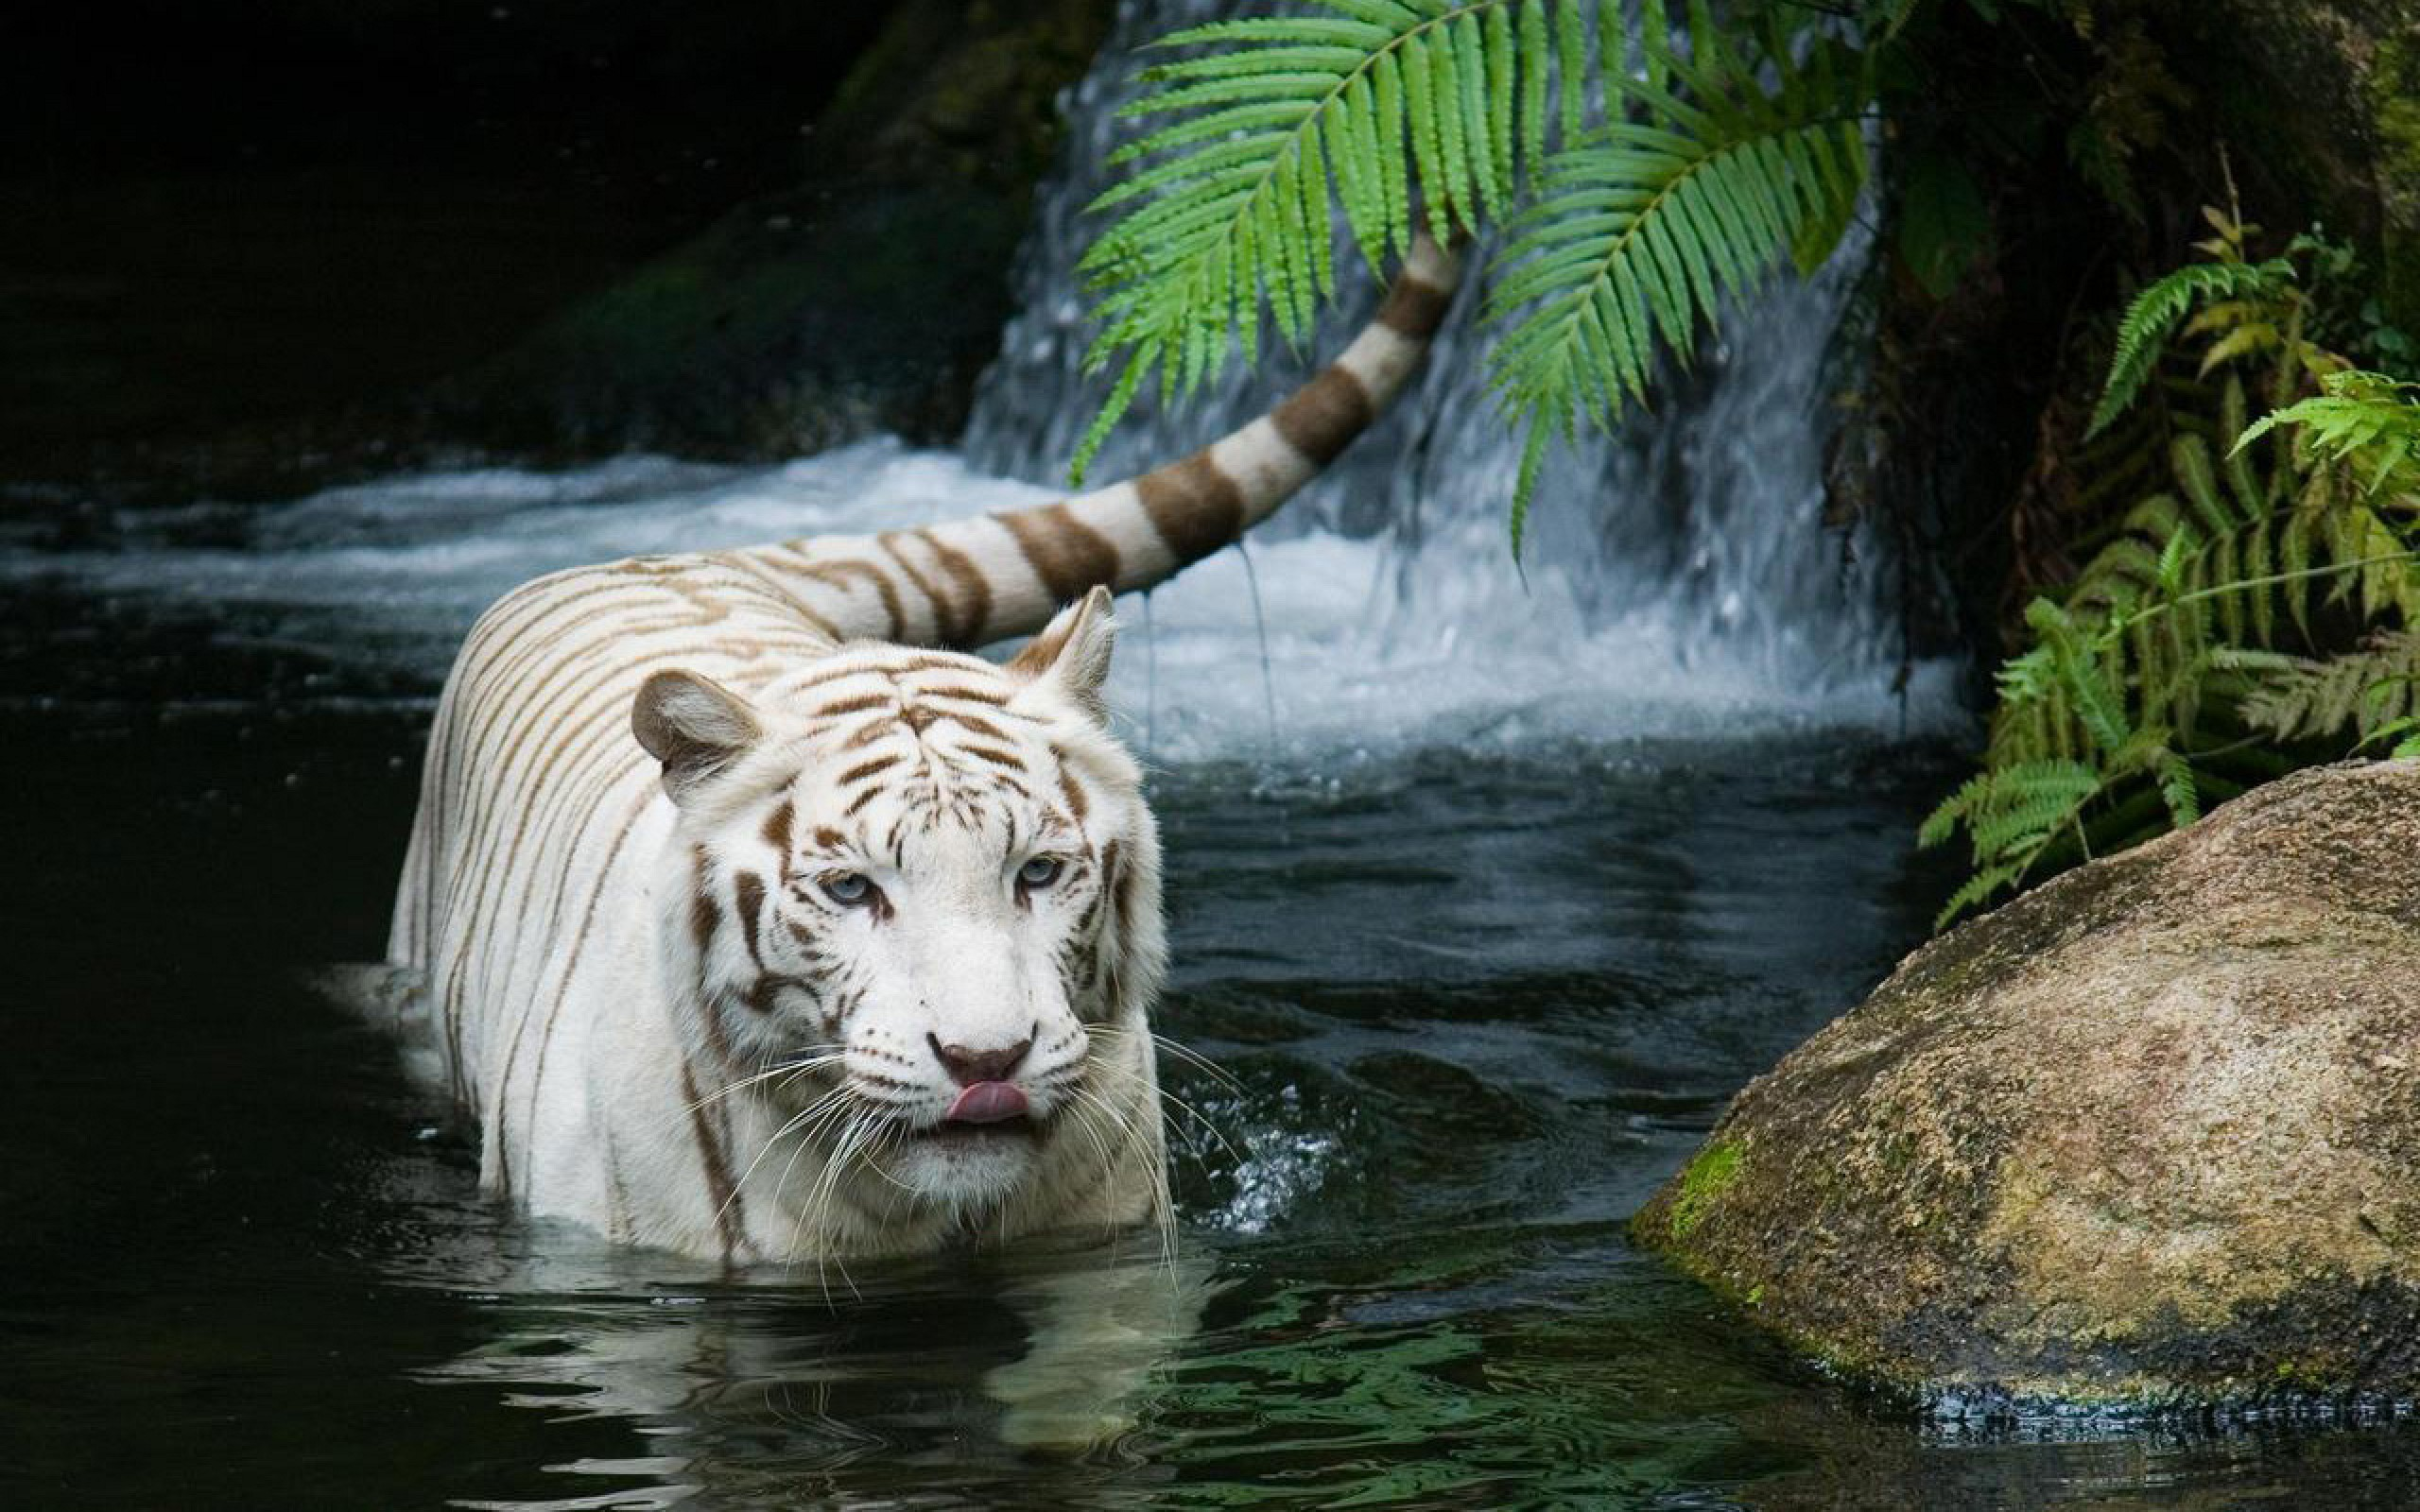 44645 download wallpaper Animals, Tigers screensavers and pictures for free